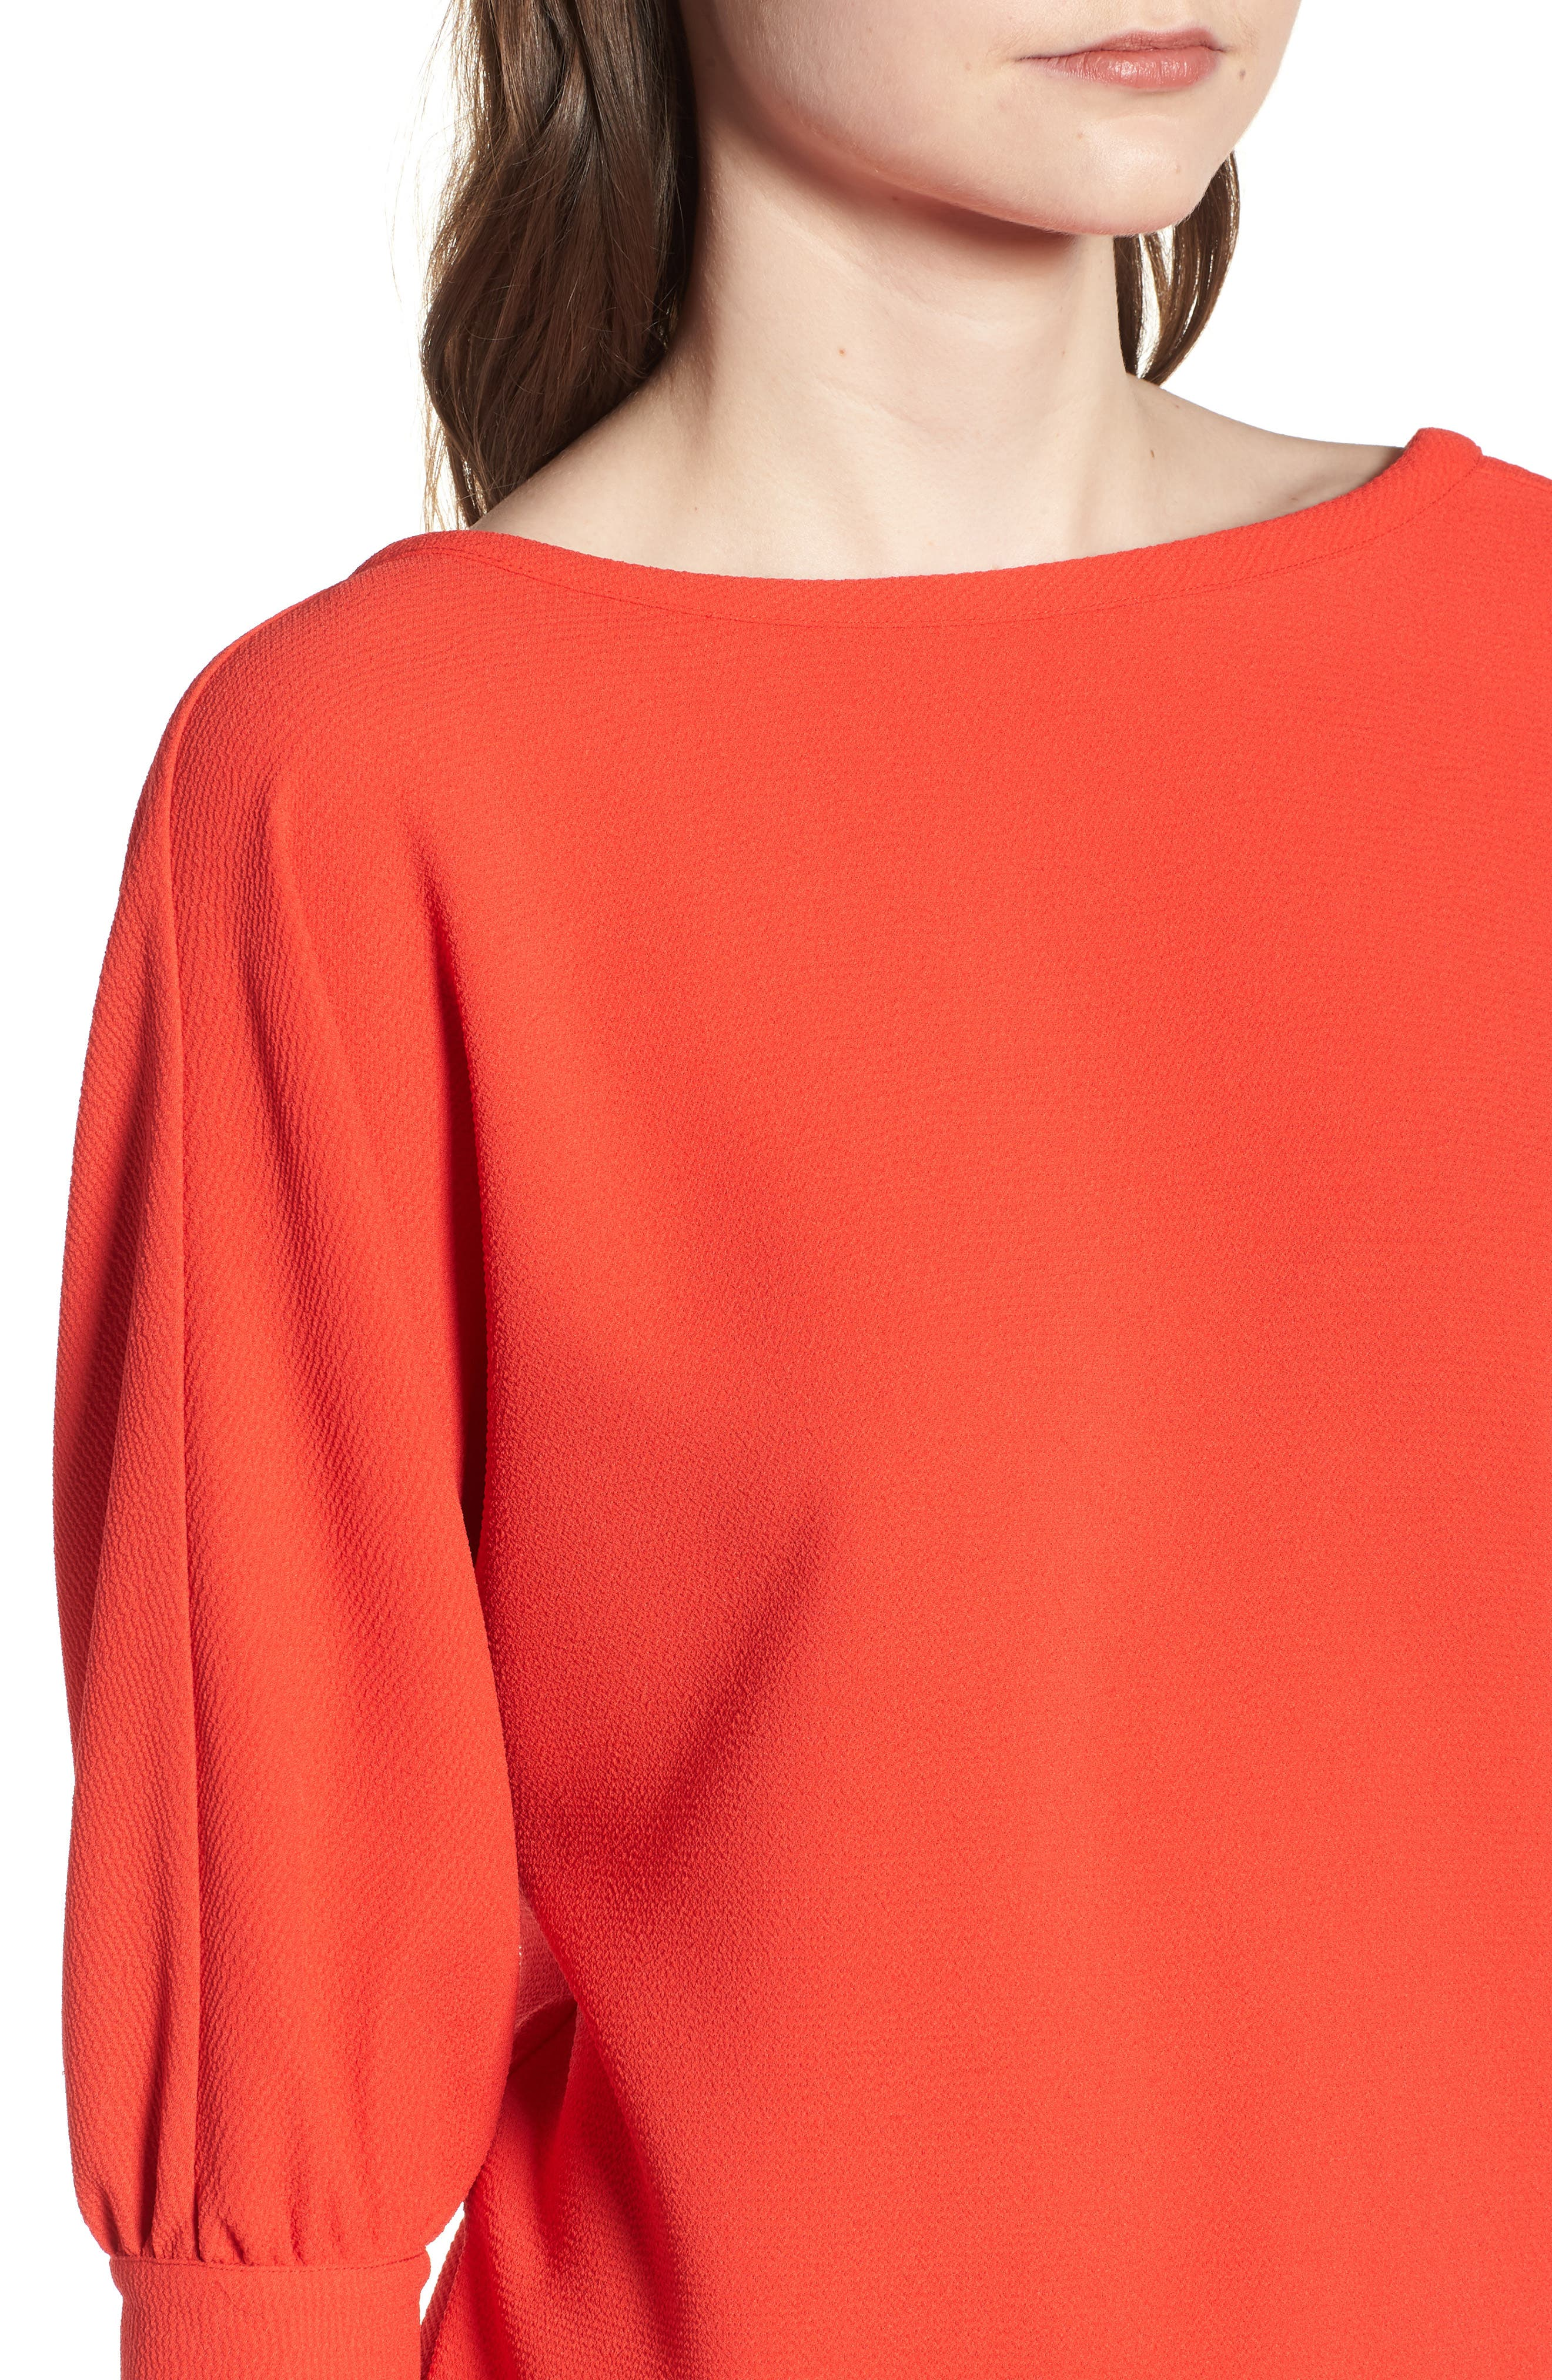 Dolman Sleeve Top,                             Alternate thumbnail 4, color,                             Red Poppy